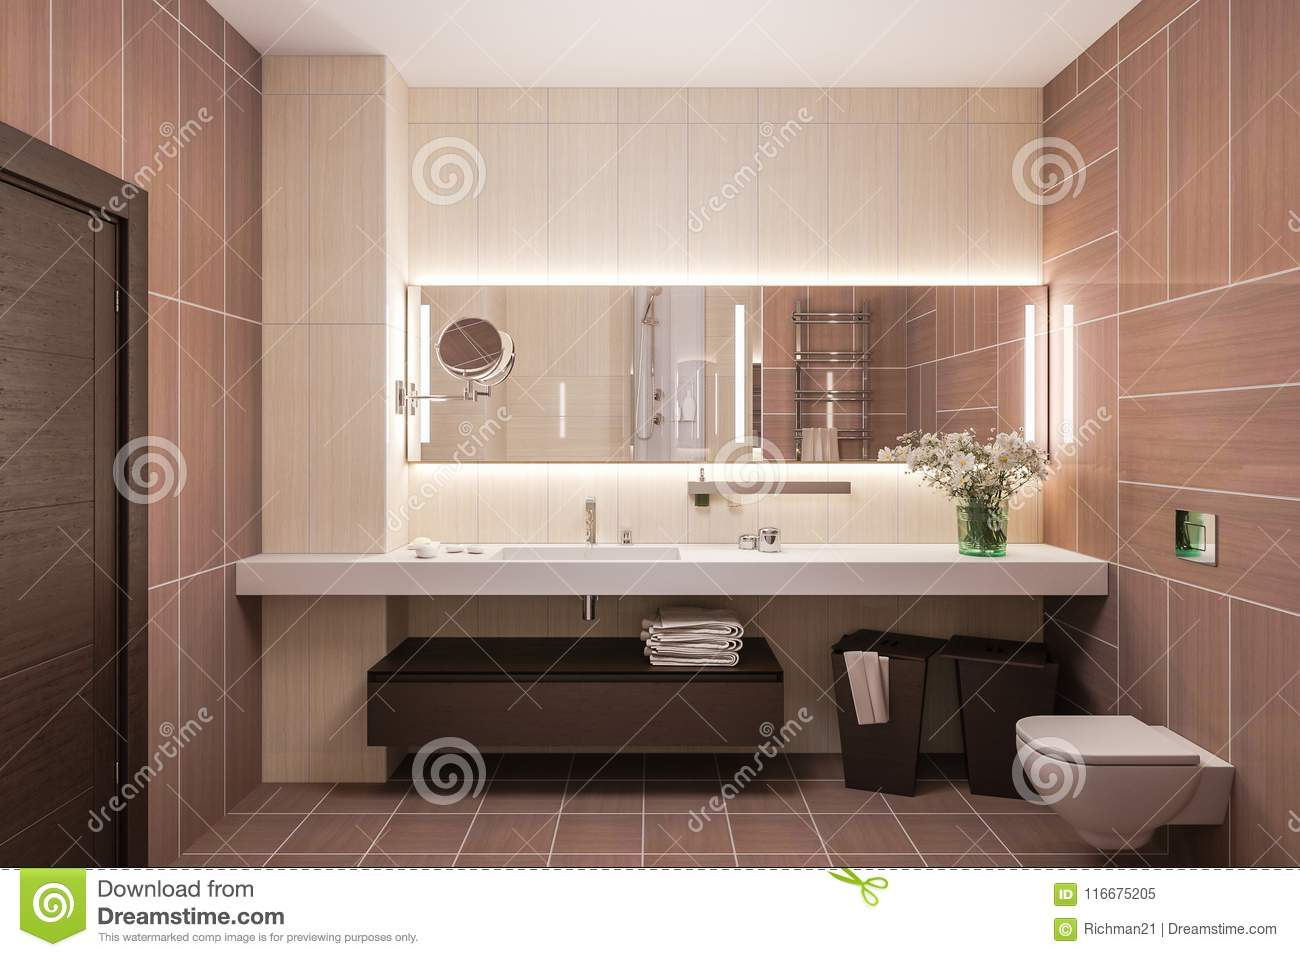 Interior Design Of A Modern Bathroom With A Large Mirror. 3d Illustration  In Warm Colors. 3d Render In High Resolution For Printing.